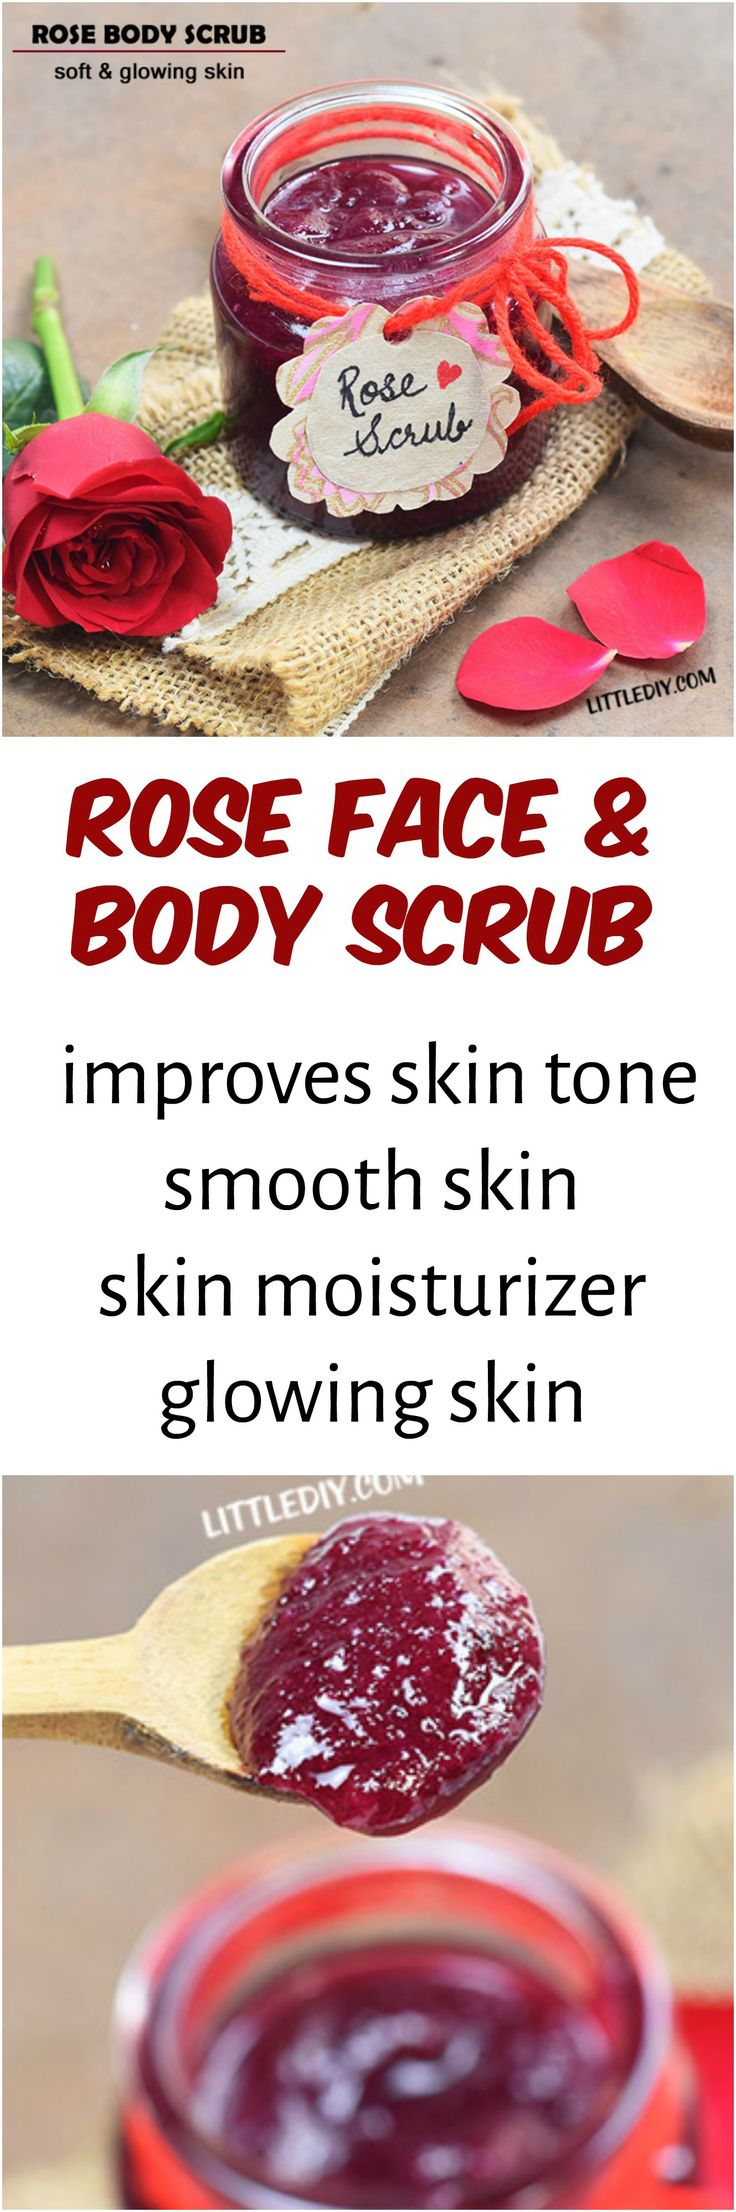 Rose face and body scrub